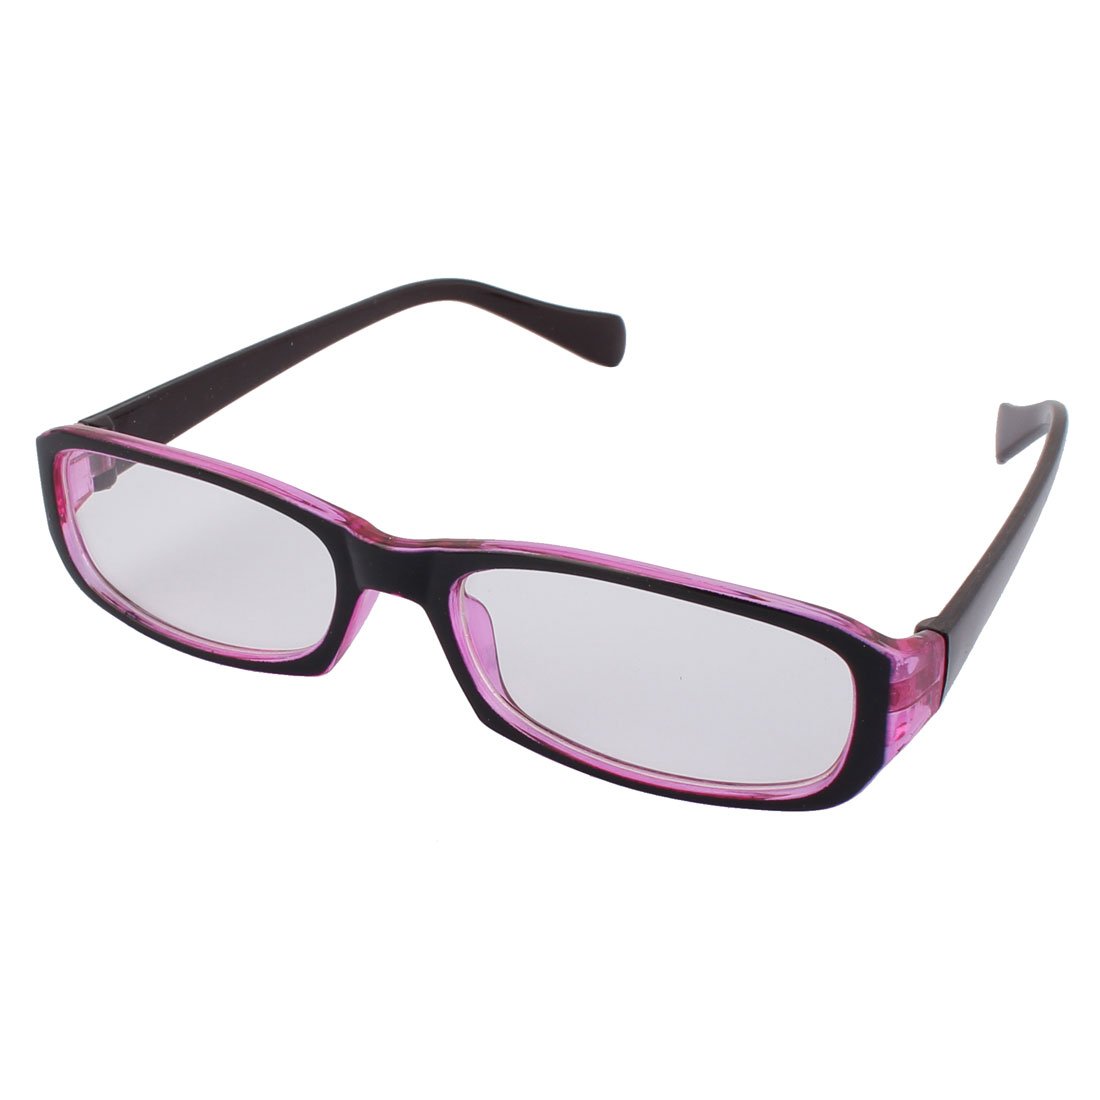 Students Optical Round Transparent Lens Purple Black Frame Plastic Eyewear Glass